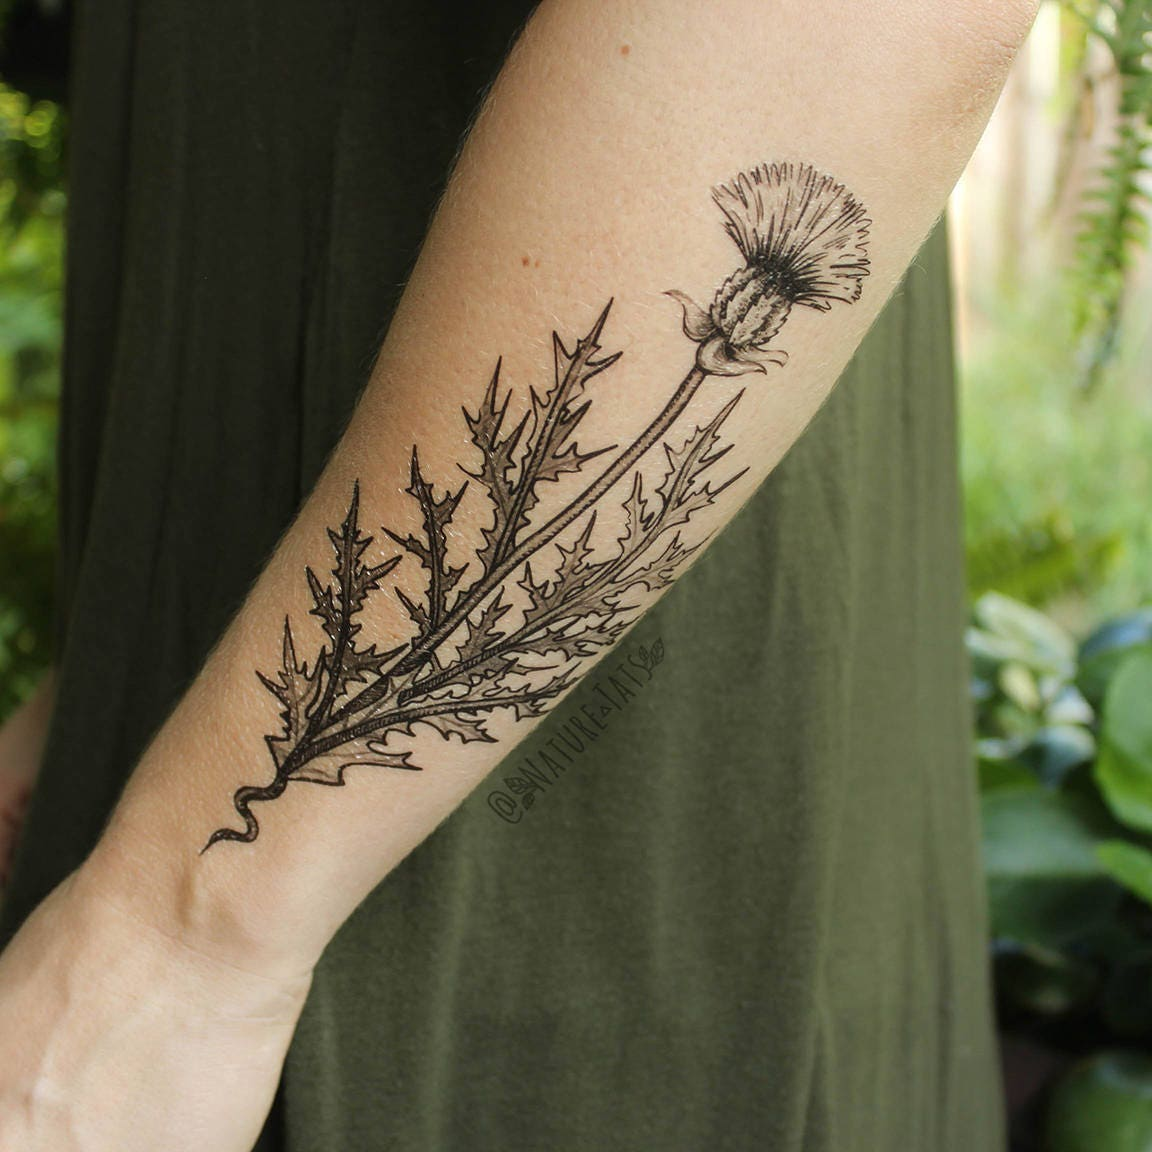 Black Line Drawing Tattoo : Purple thistle flower temporary tattoo black line drawing